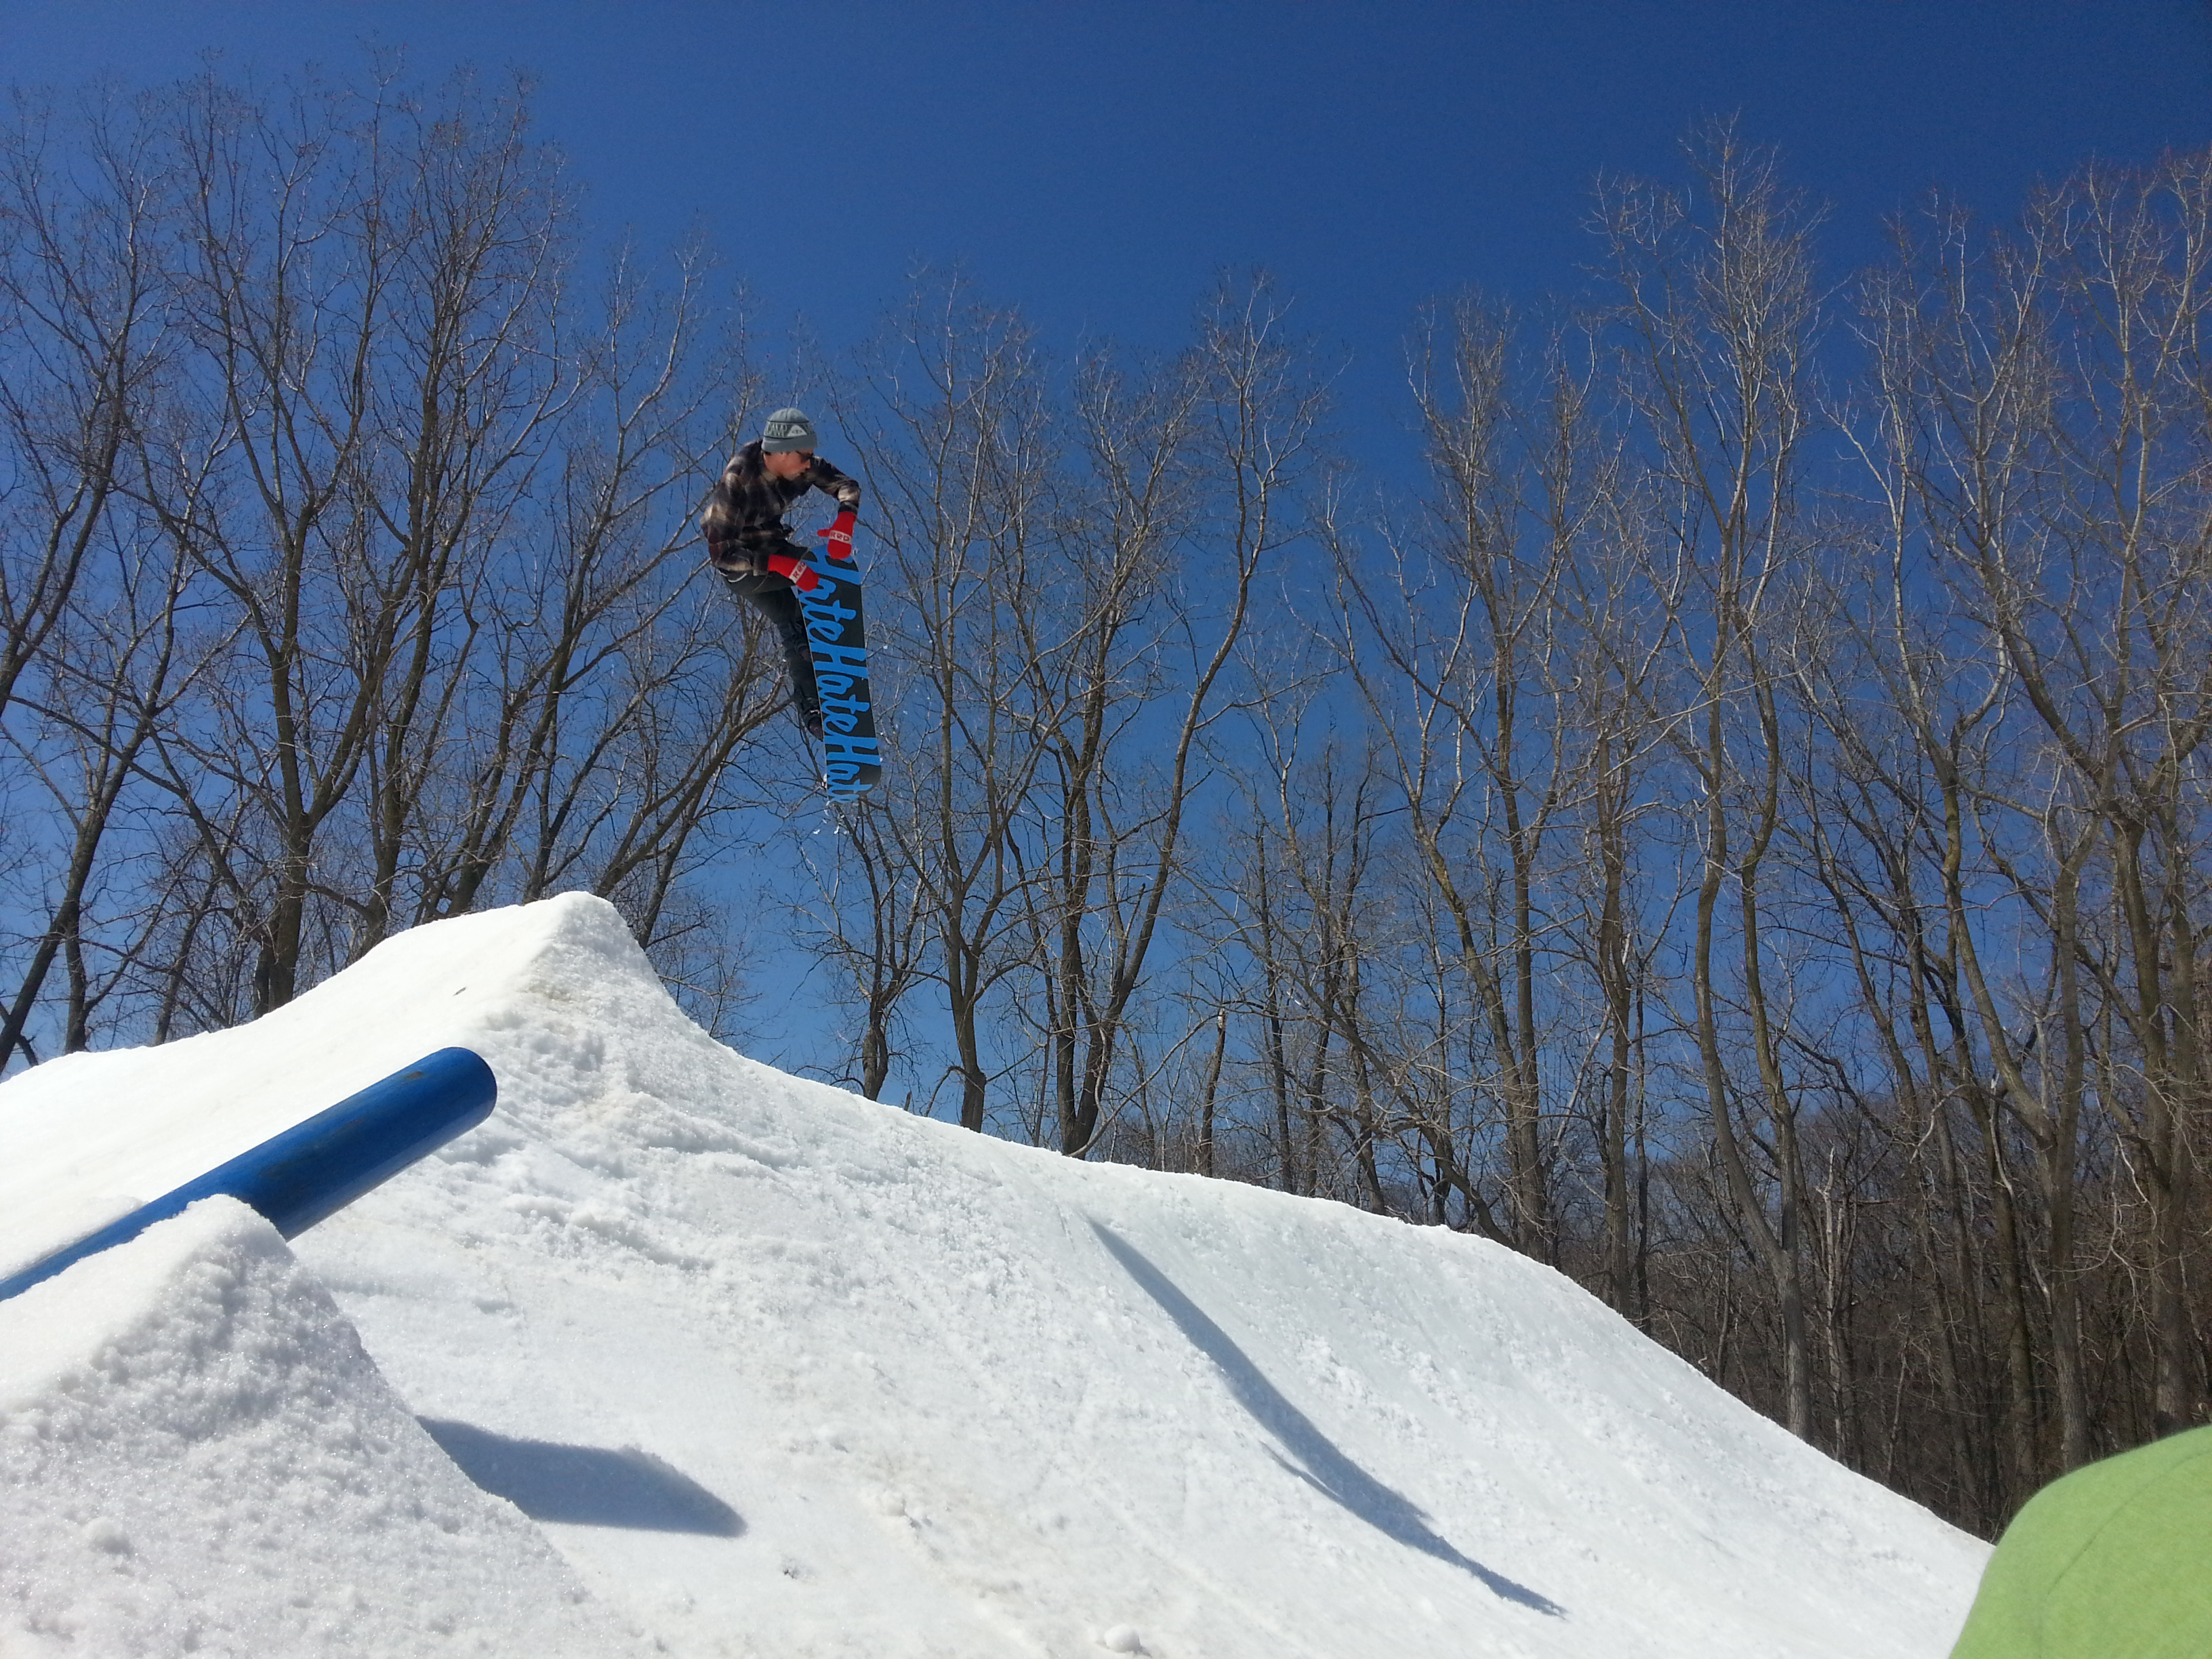 Double tail grab off the tombstone at Hawk Island